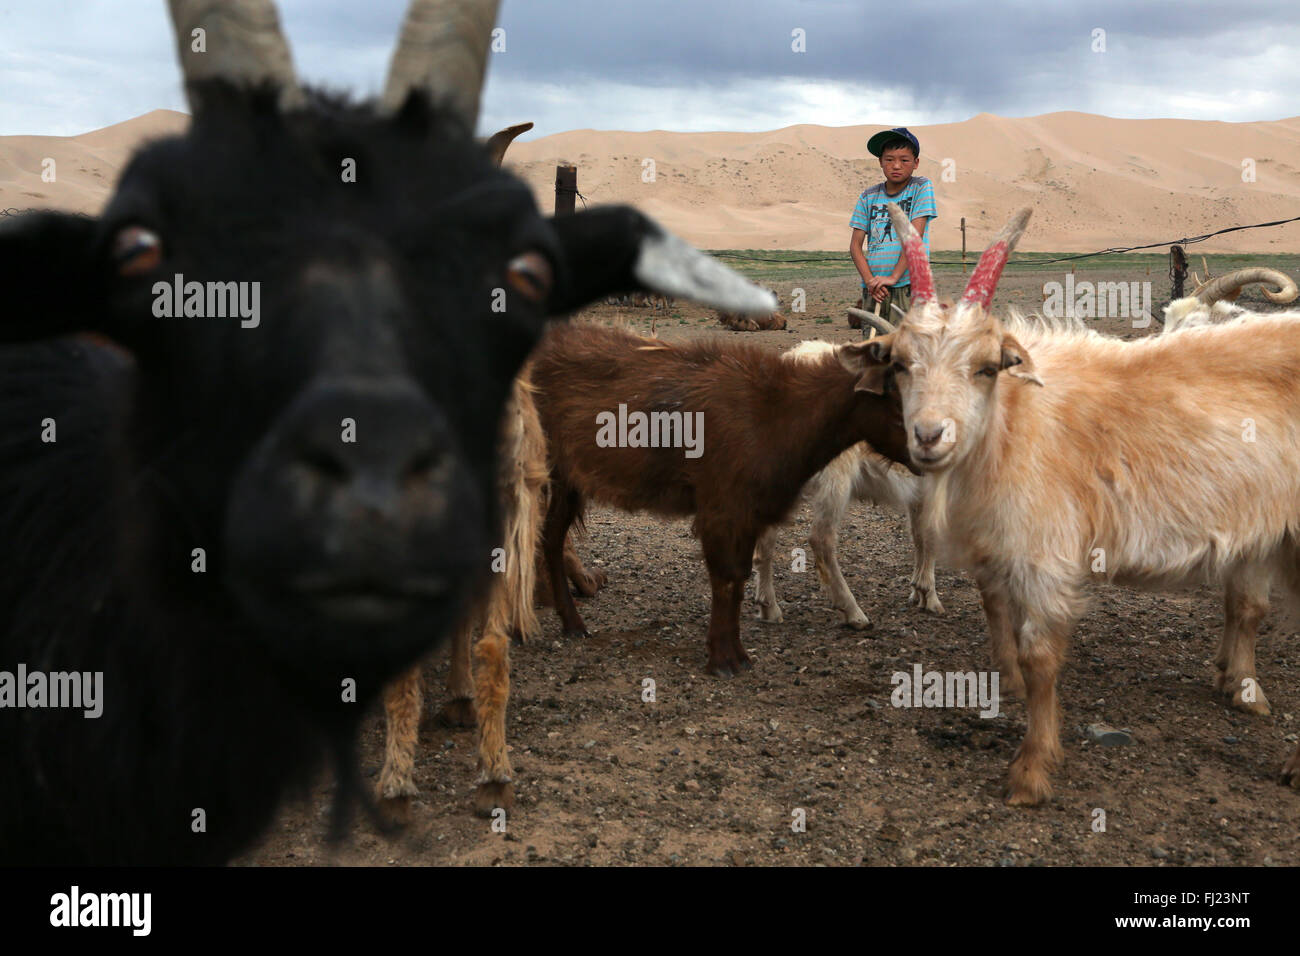 Portrait of boy with cattle in Gobi desert, Mongolia - Stock Image